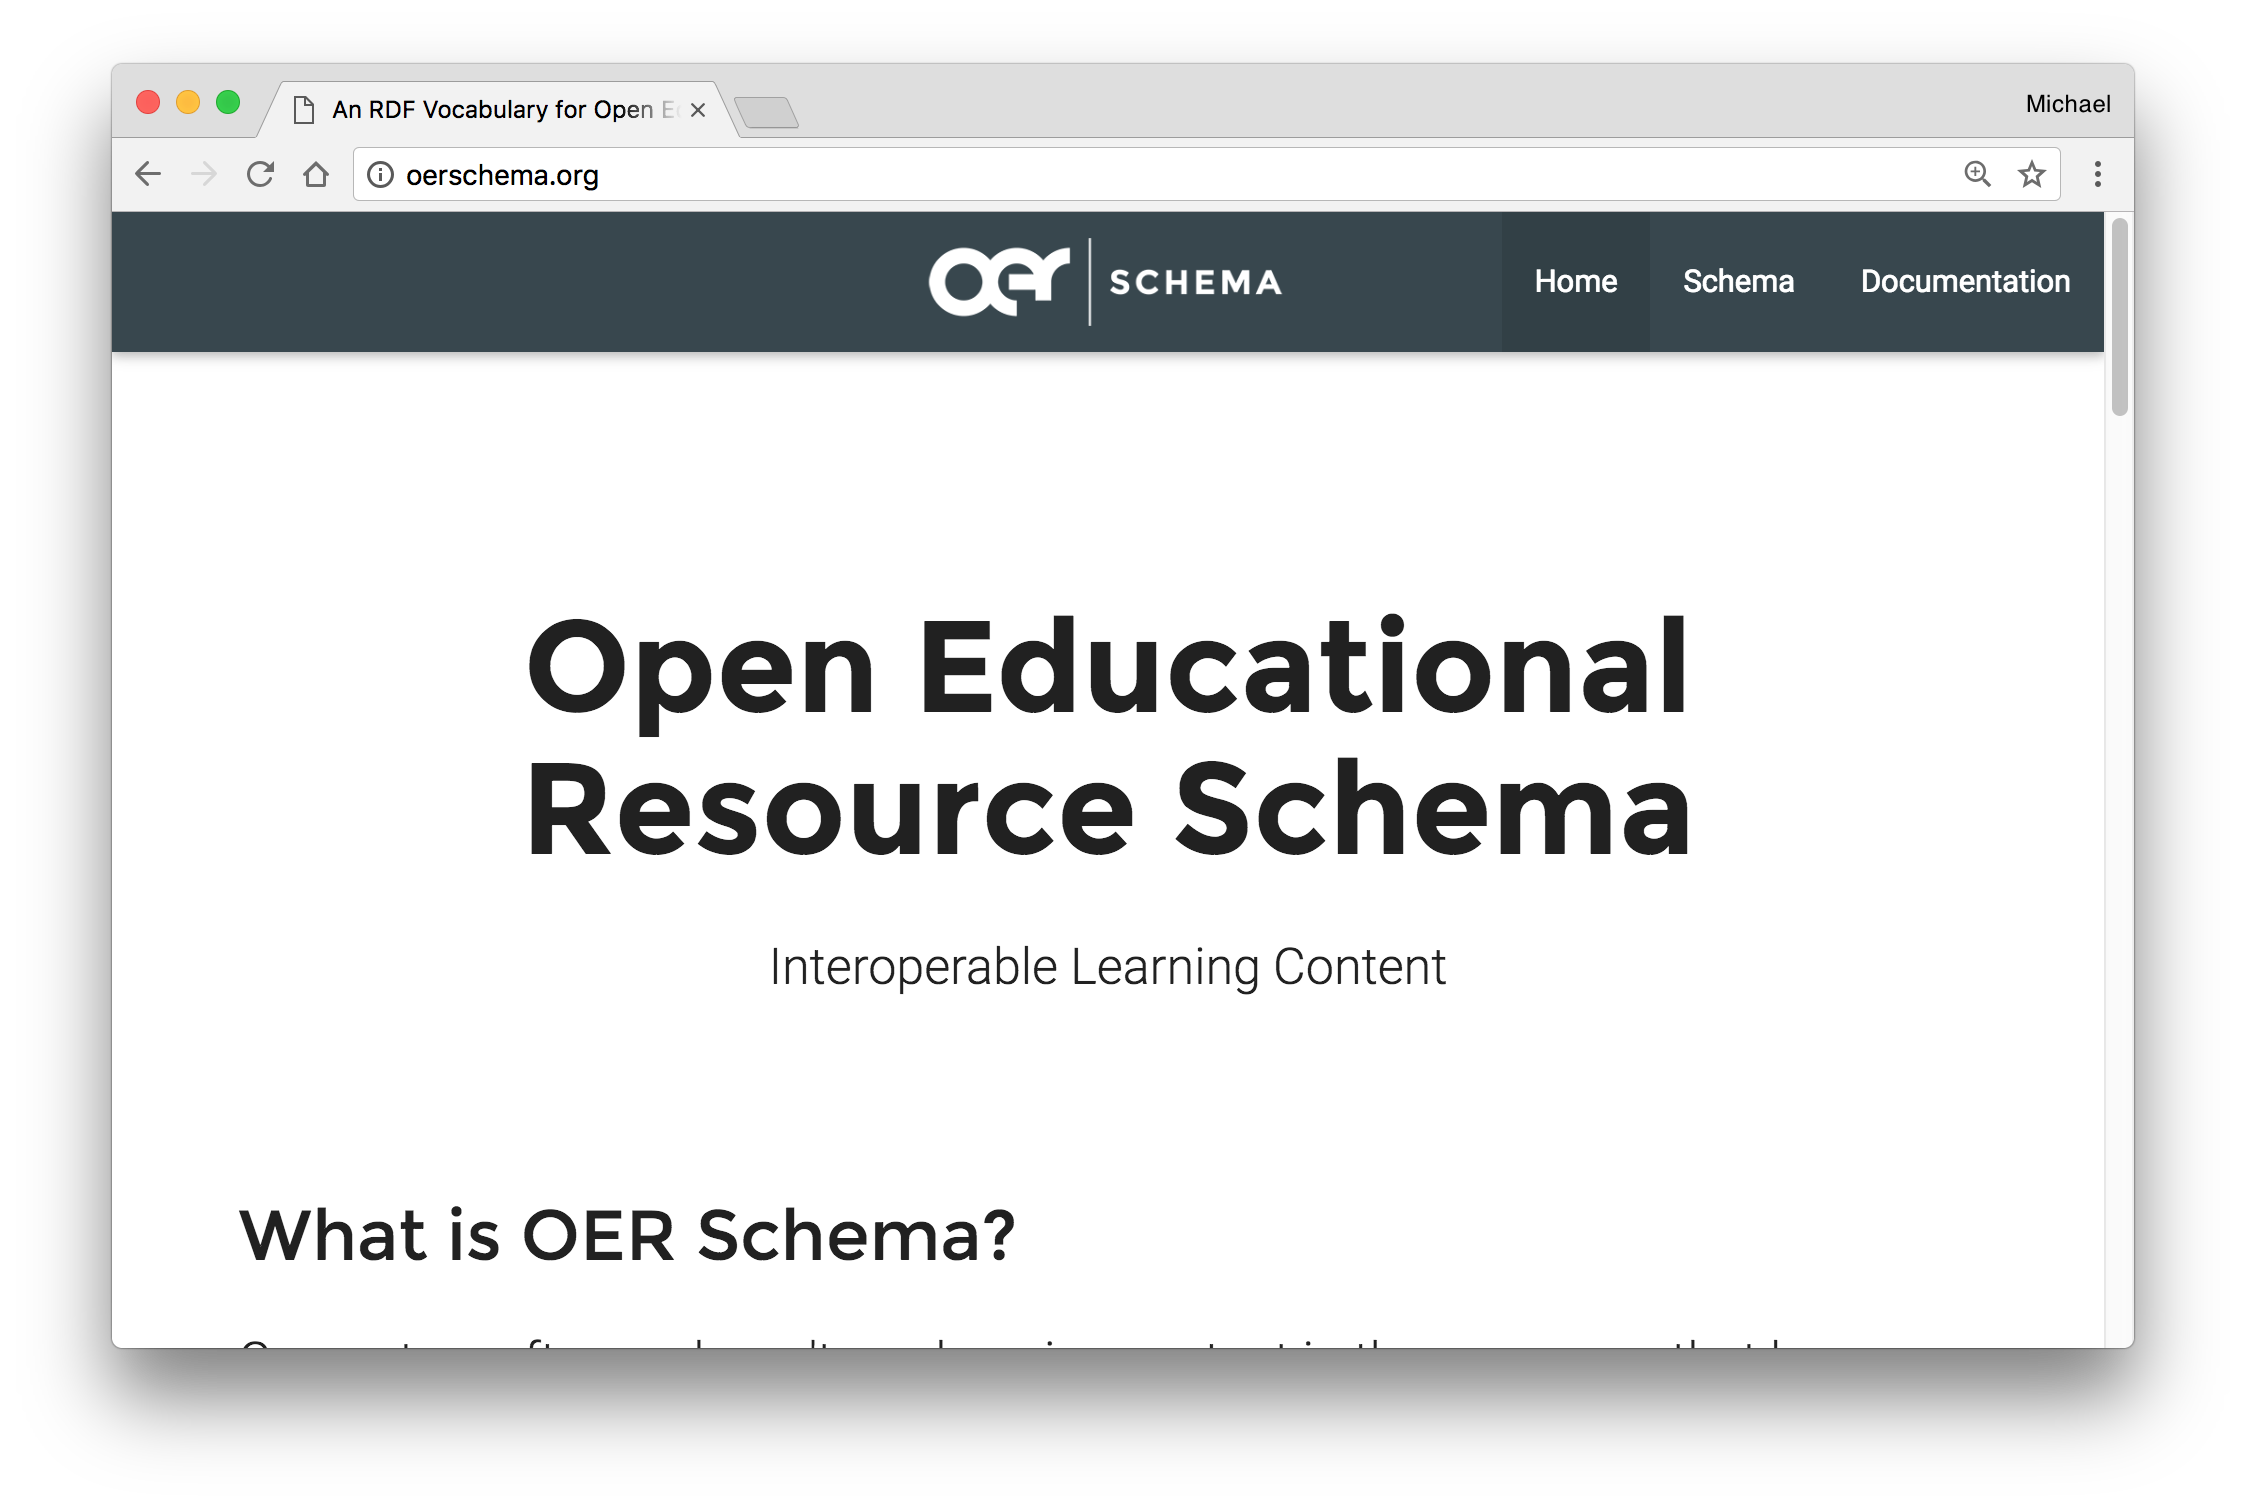 oer schema project image